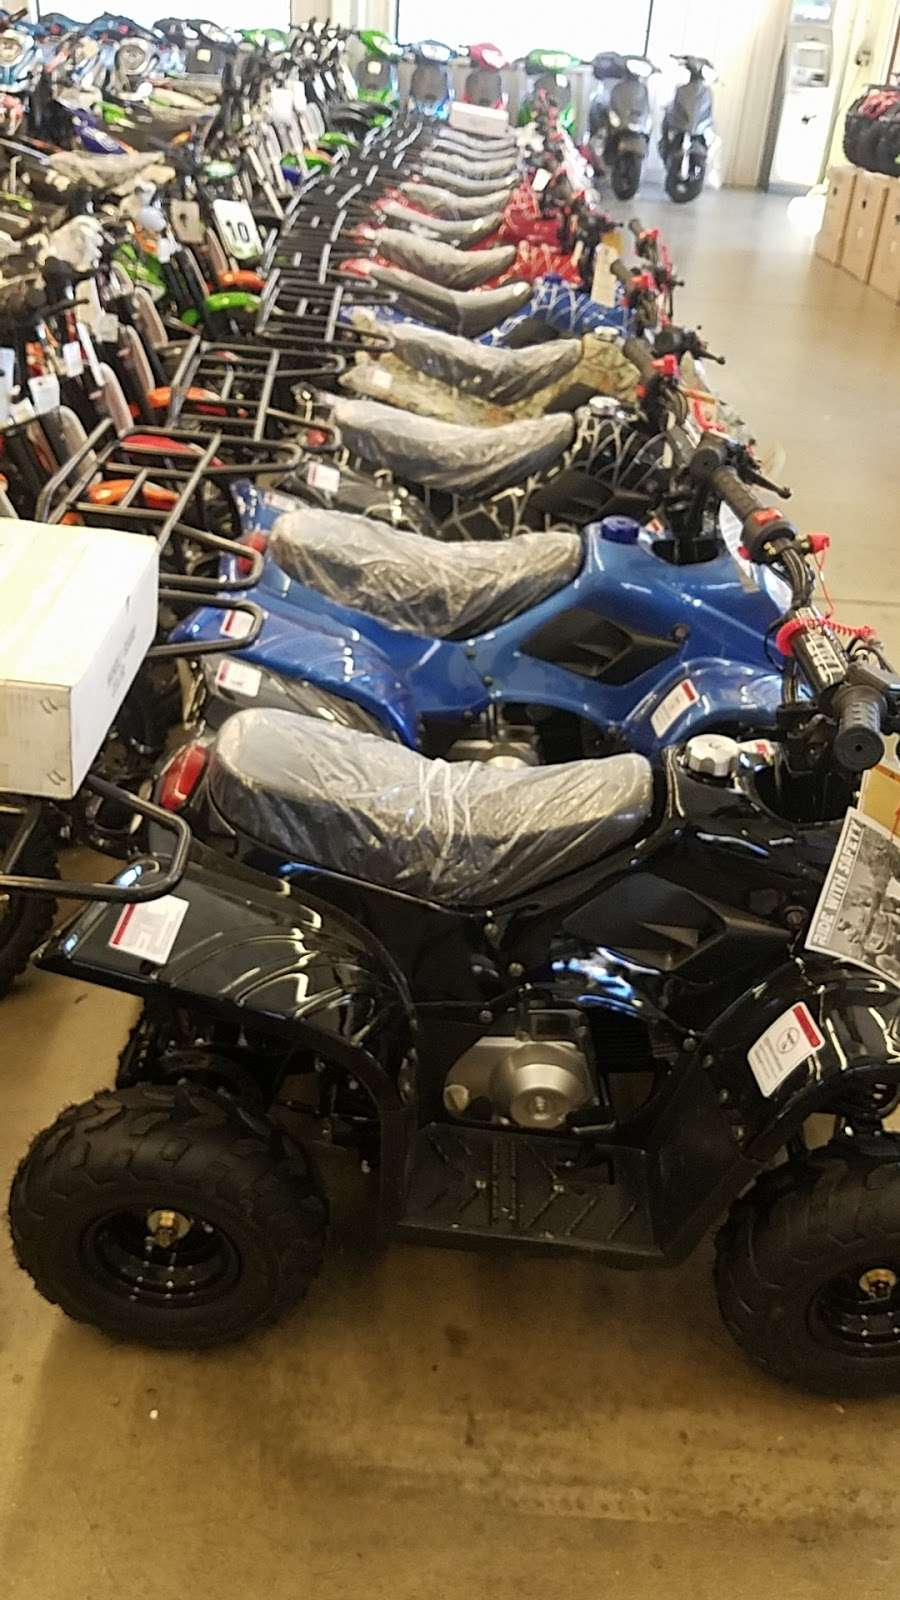 Atv Distributor LLC - store  | Photo 8 of 10 | Address: 7007 E 88th Ave J2, Henderson, CO 80640, USA | Phone: (720) 394-0414